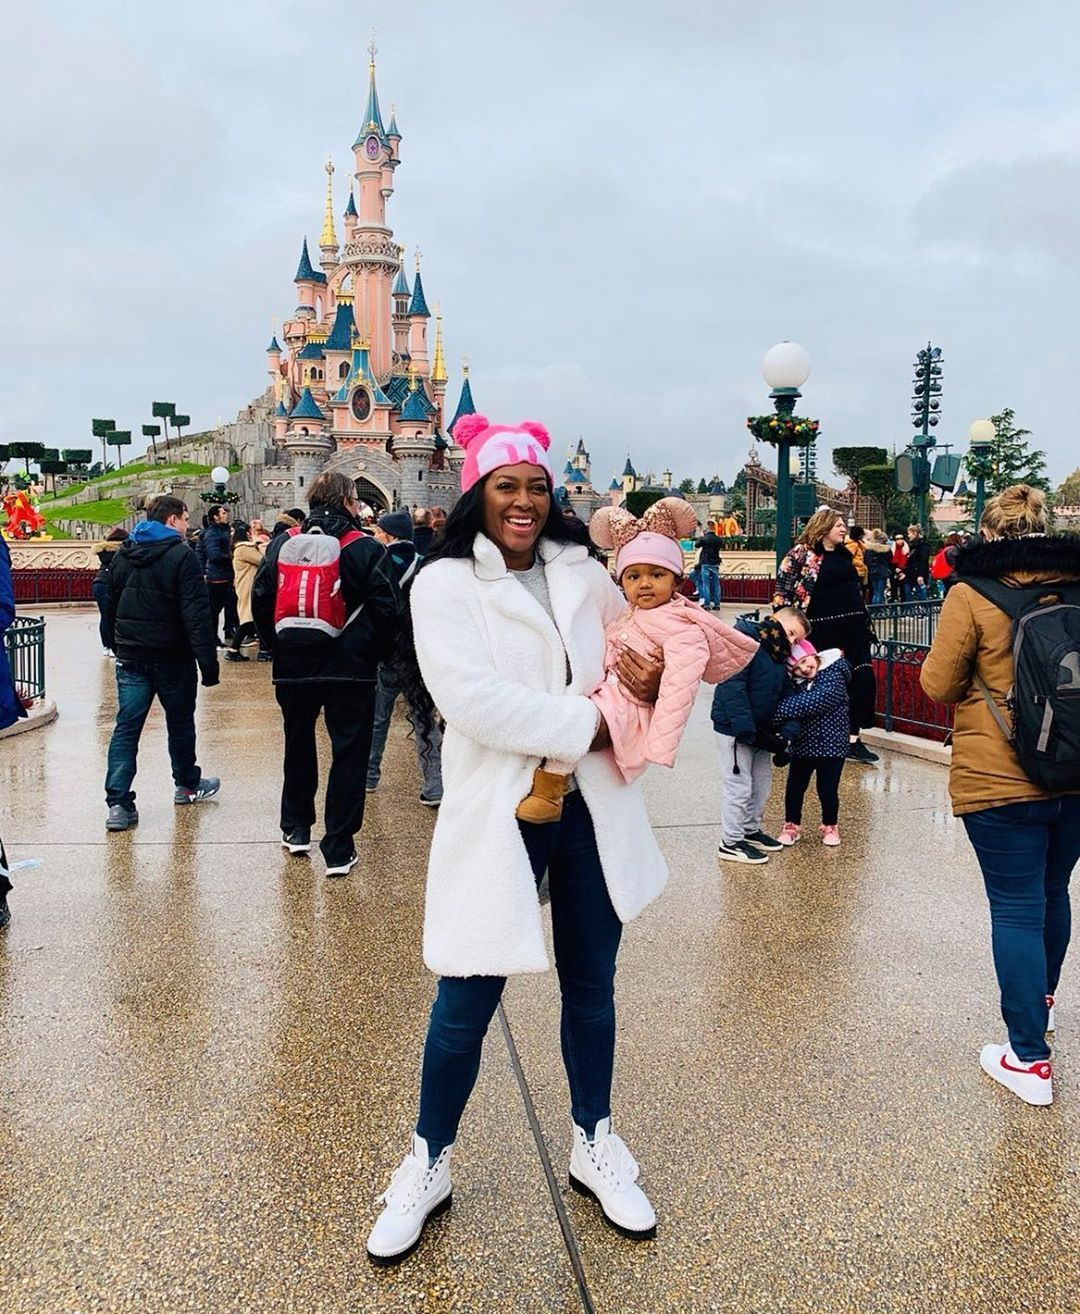 Kenya Moore Shares A Video With Baby Brooklyn Daly Walking